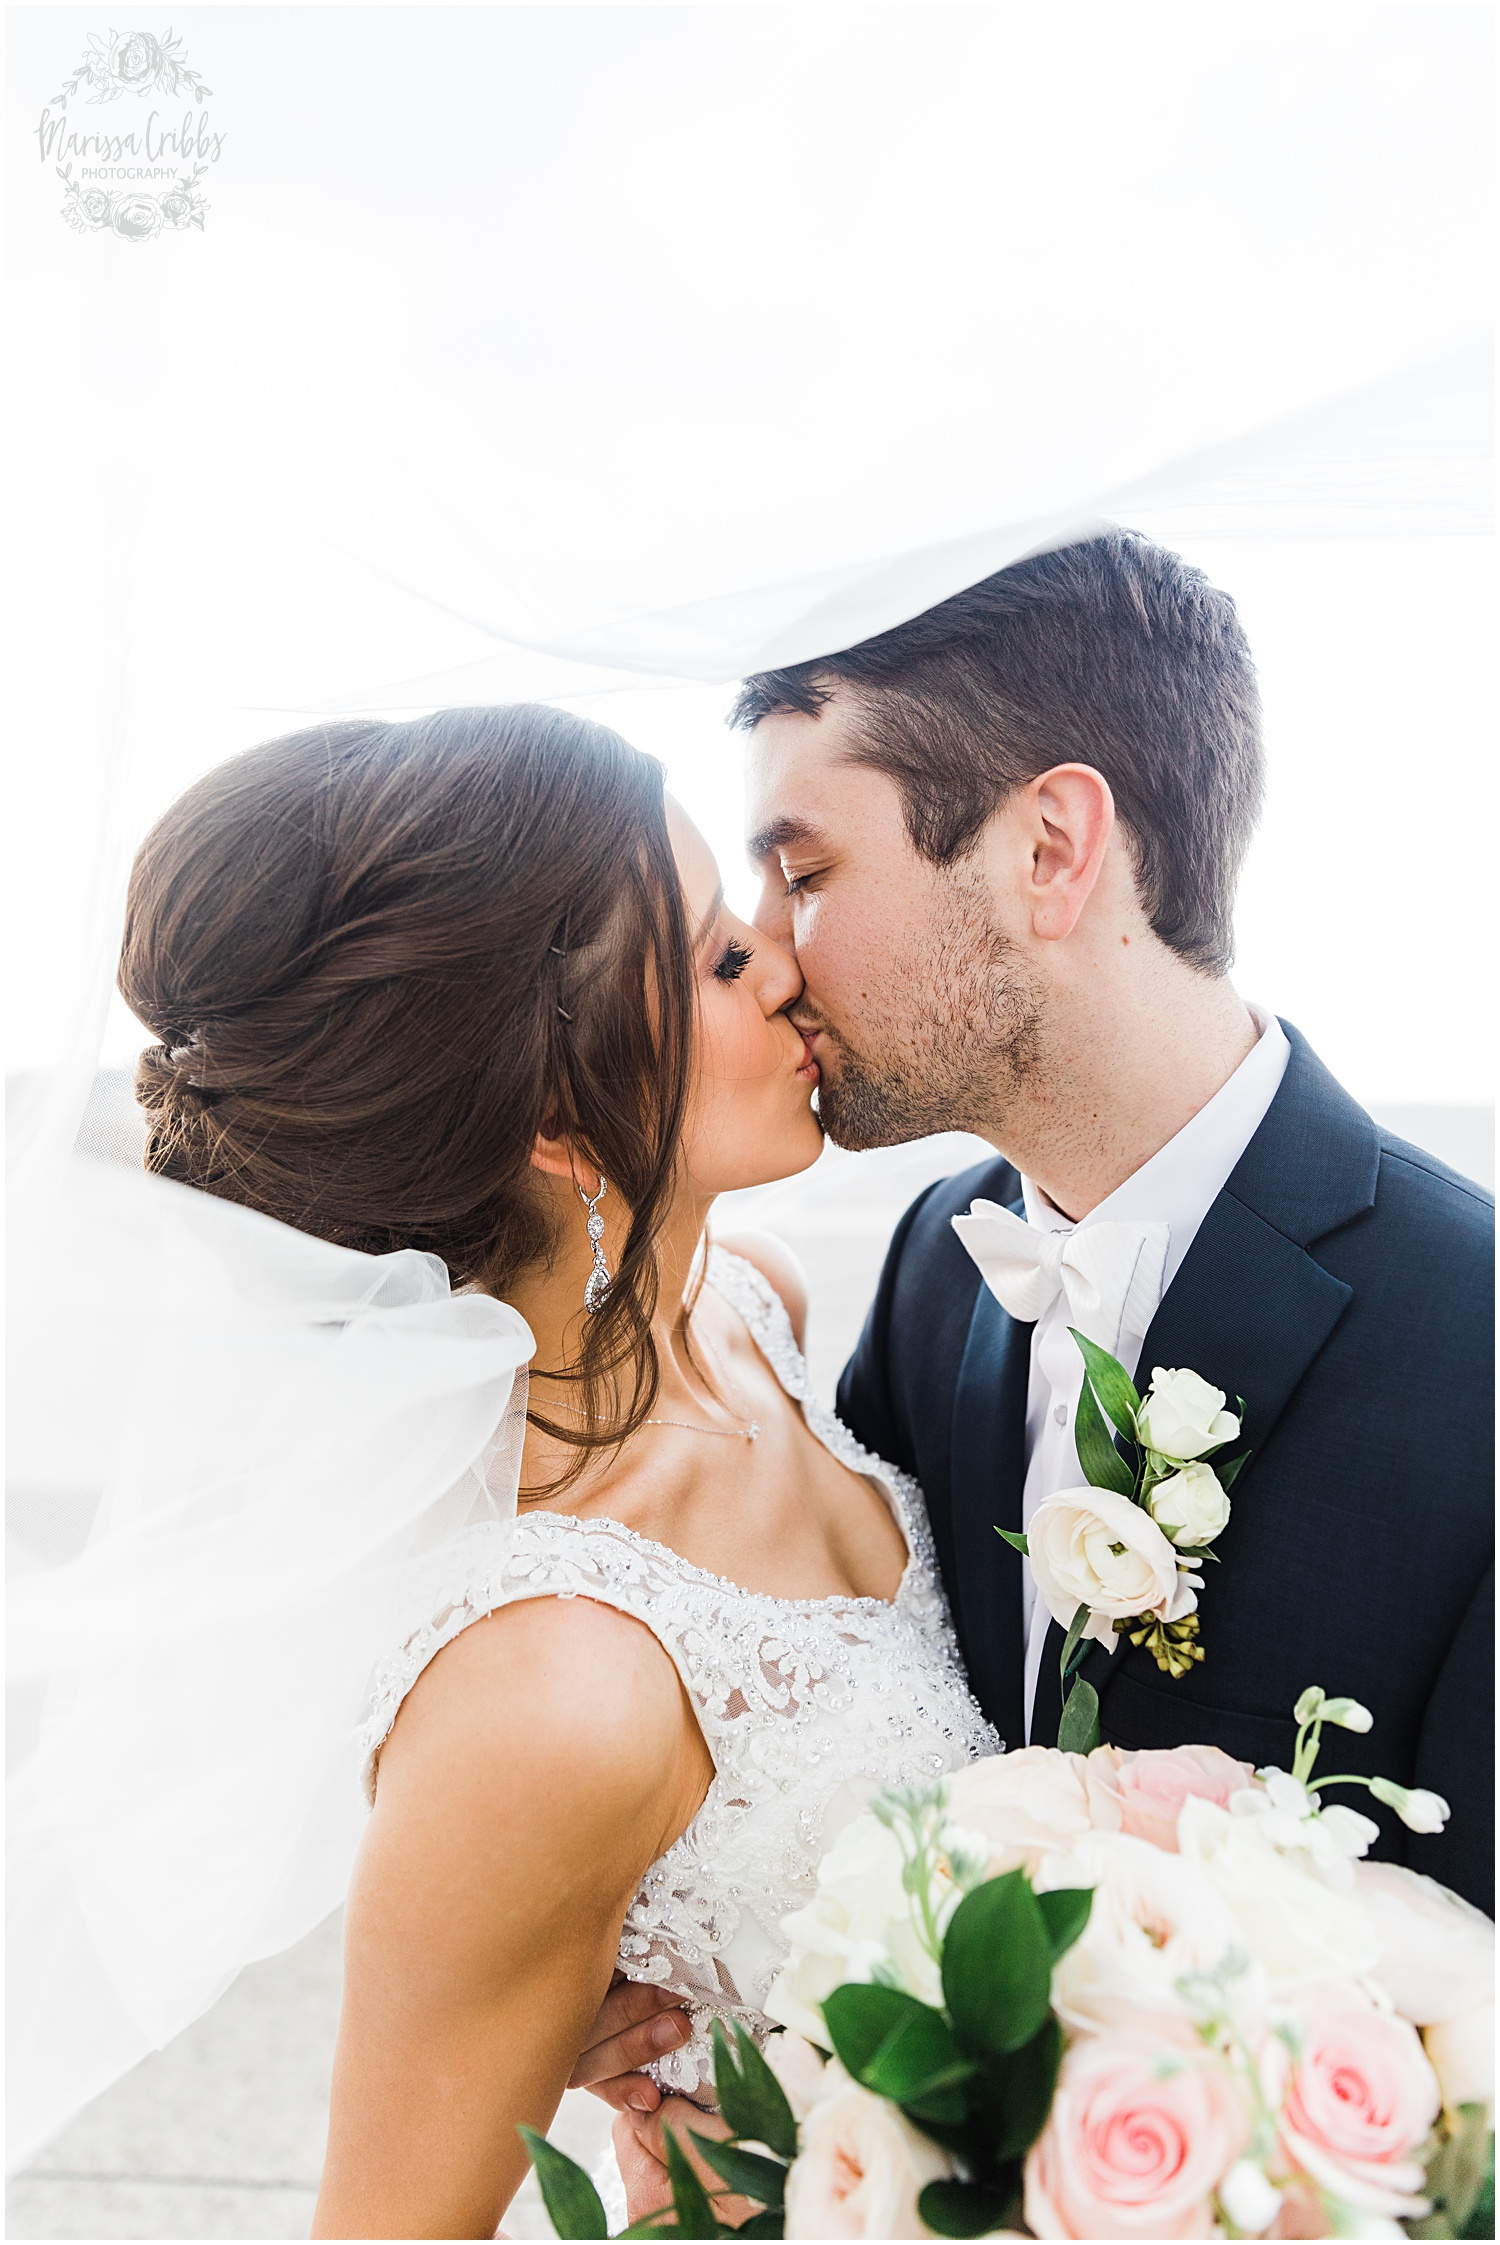 MEGAN & DEREK WEDDING BLOG | MARISSA CRIBBS PHOTOGRAPHY_8162.jpg